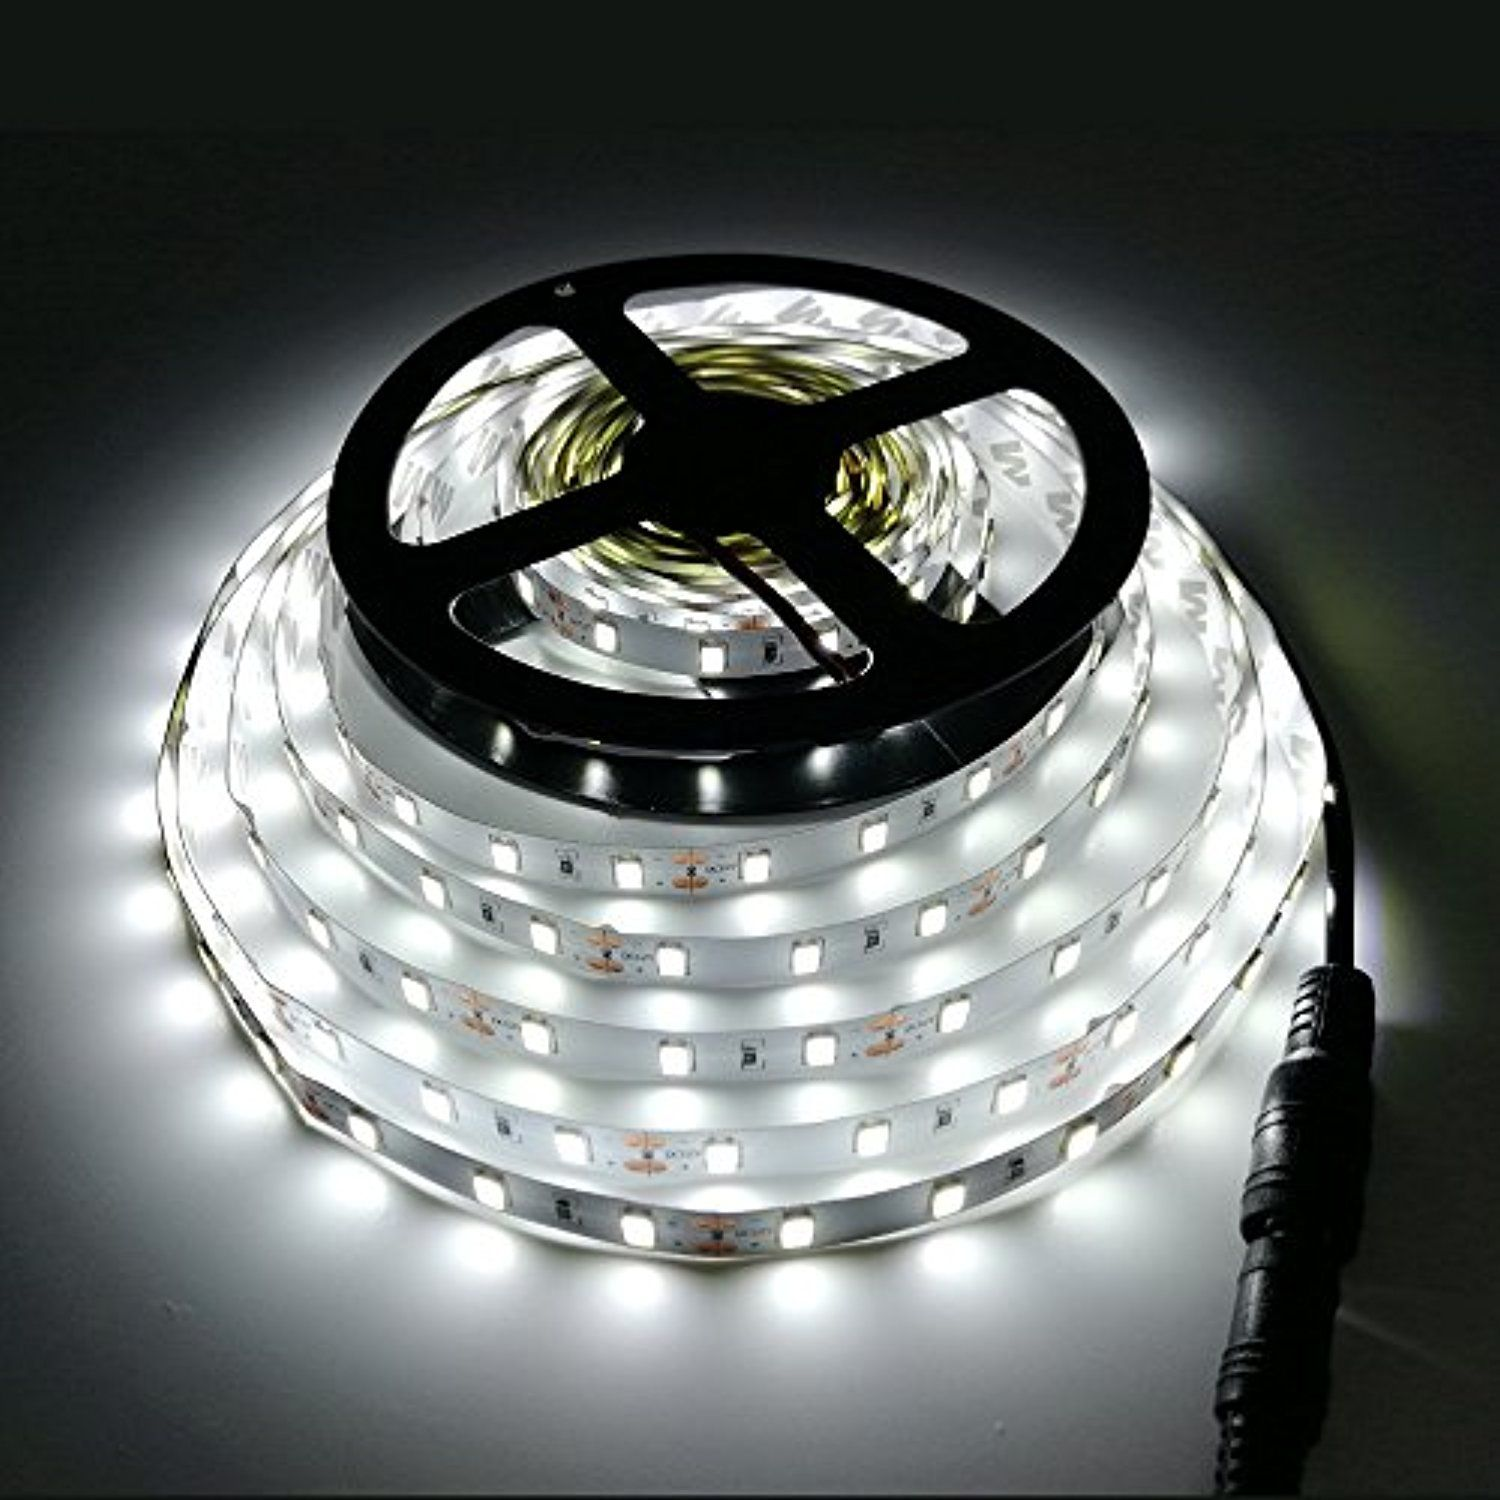 16 4ft 5m Led High Brightness Flexible Light Strip 300 Units Smd 5630 Leds 12v Dc Non Waterproof Ip20 Light S Lighting Ceiling Fans Strip Lighting Car Bar